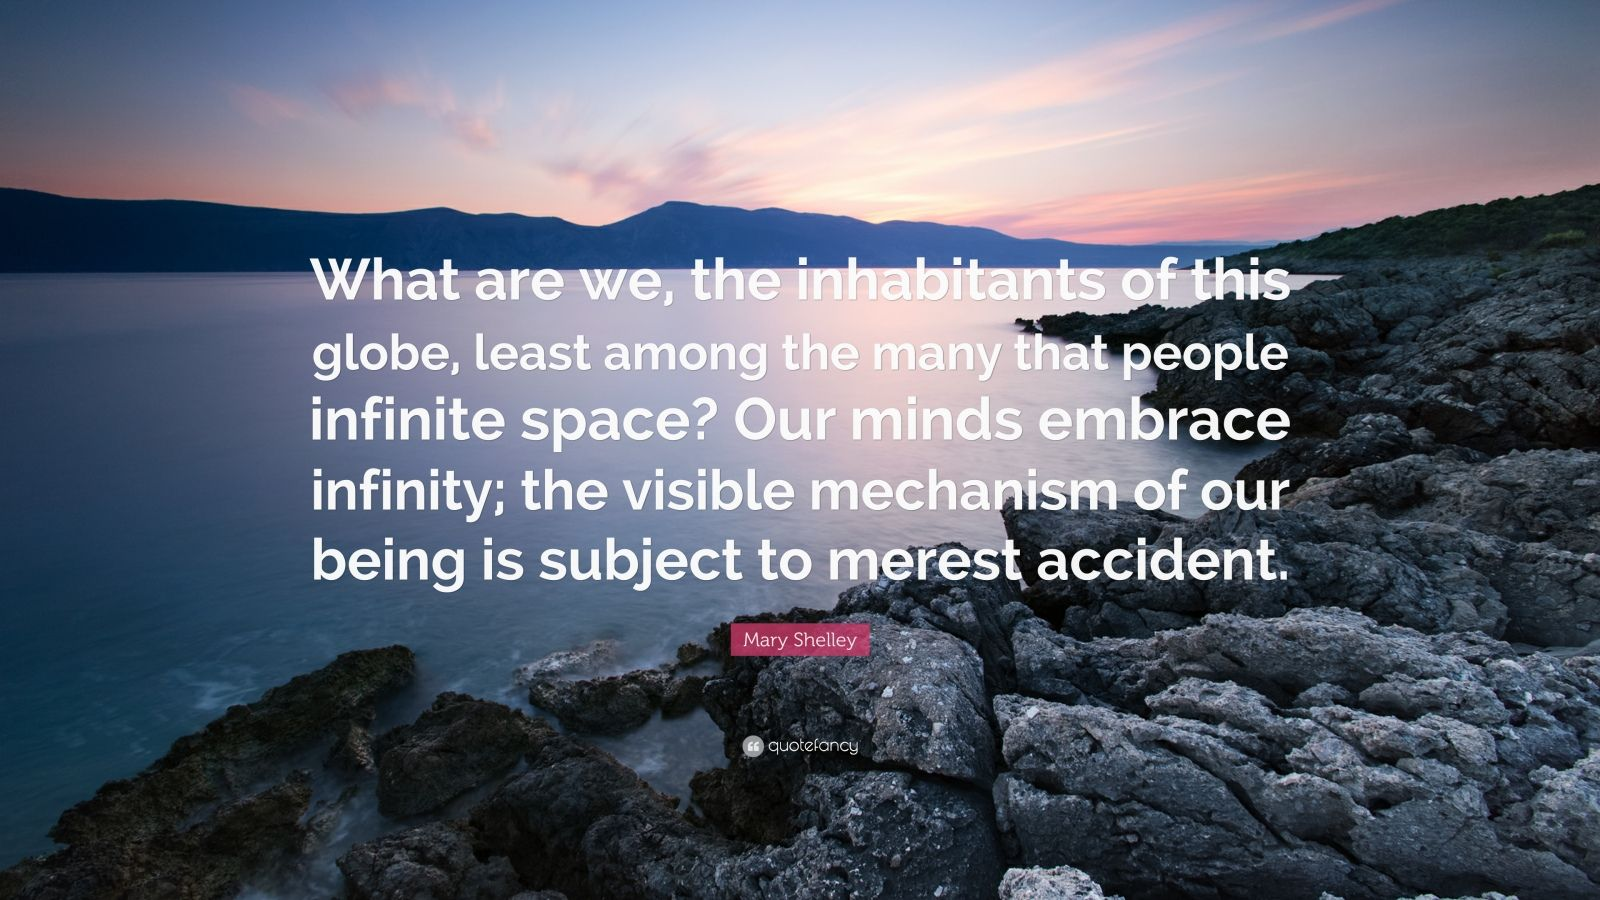 """Mary Shelley Quote: """"What are we, the inhabitants of this globe, least among the many that people infinite space? Our minds embrace infinity; the visible mechanism of our being is subject to merest accident."""""""